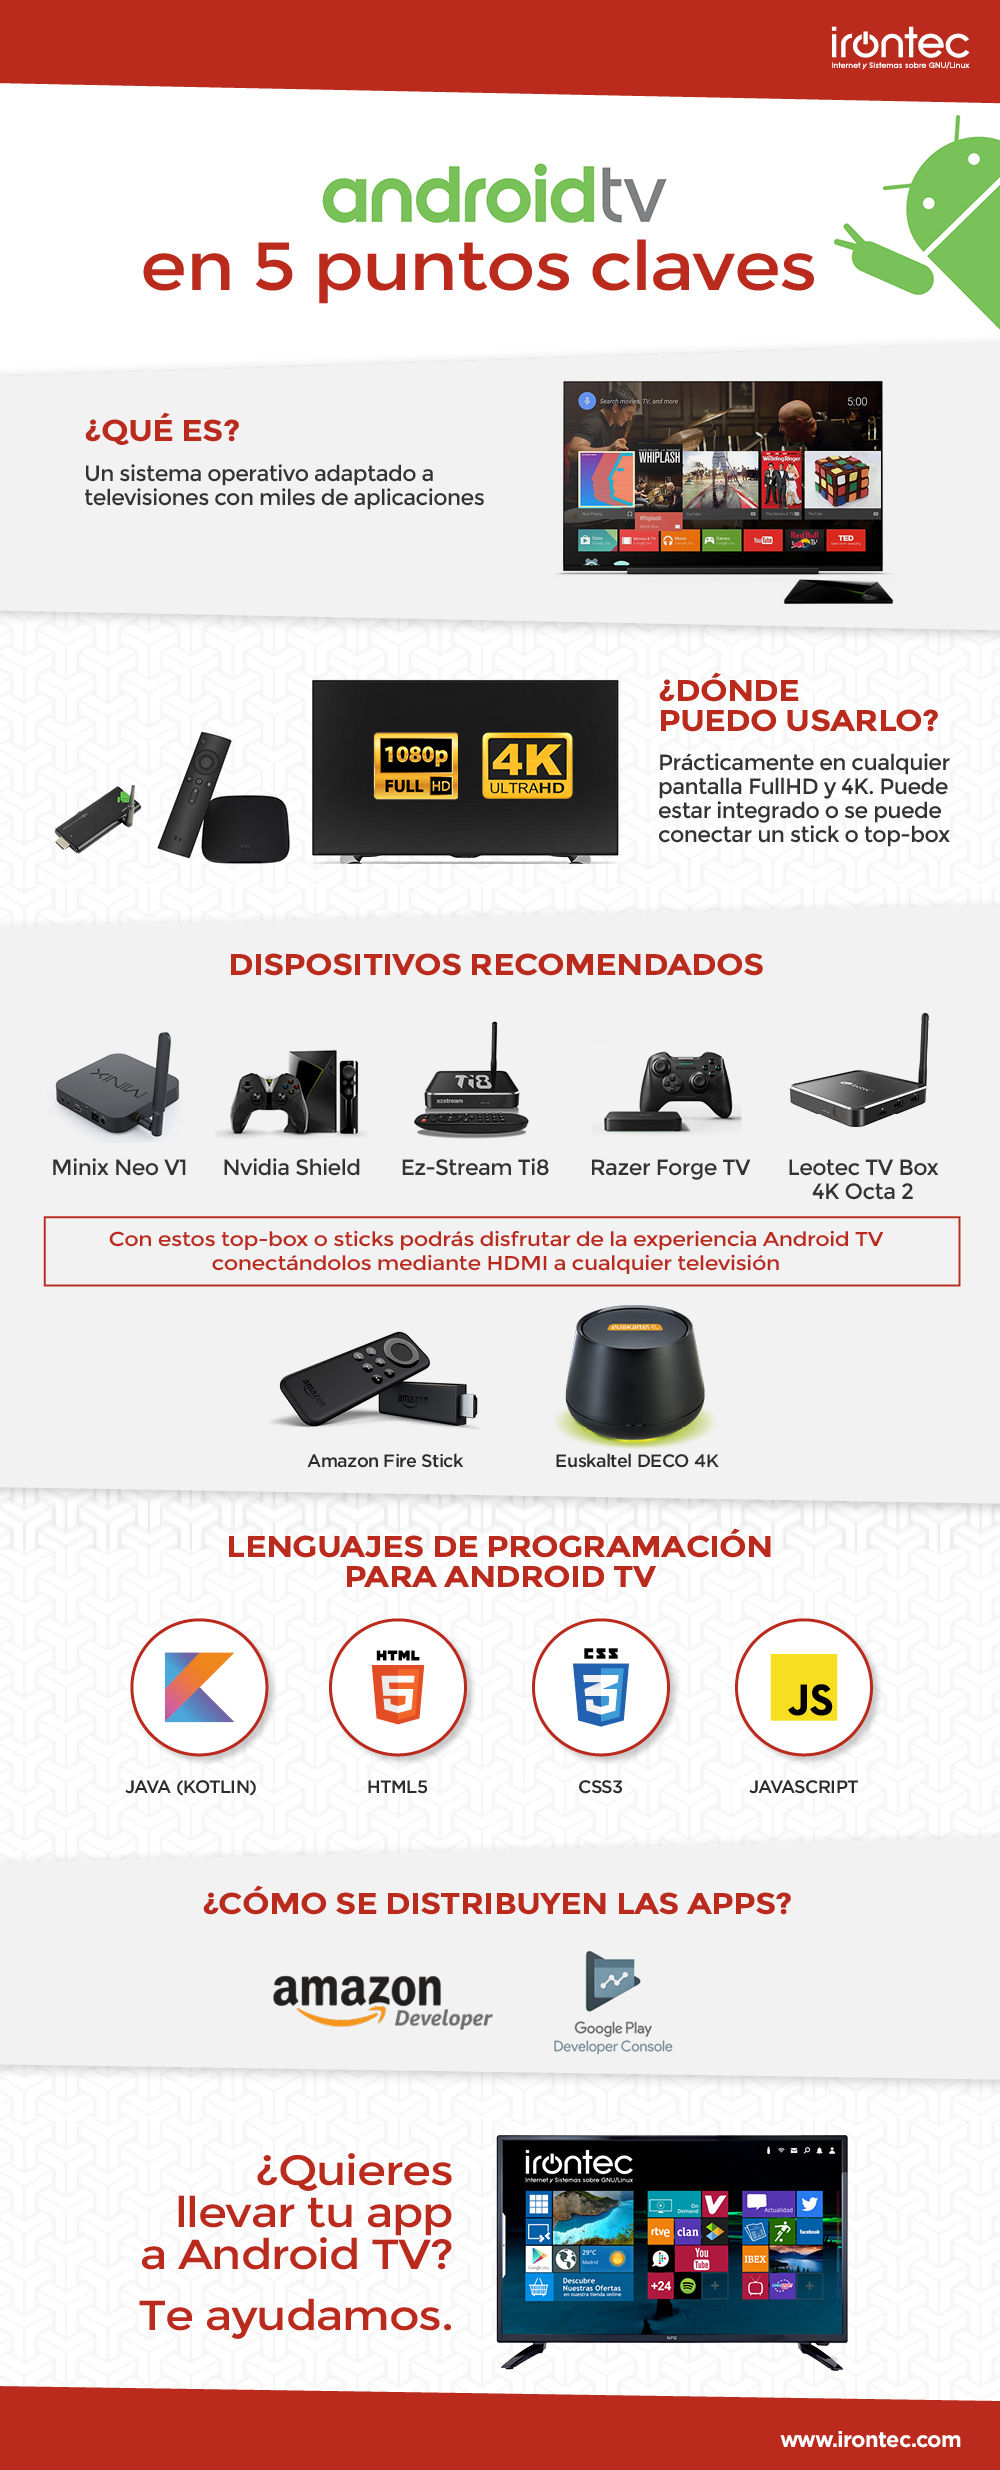 Android TV en cinco puntos clave